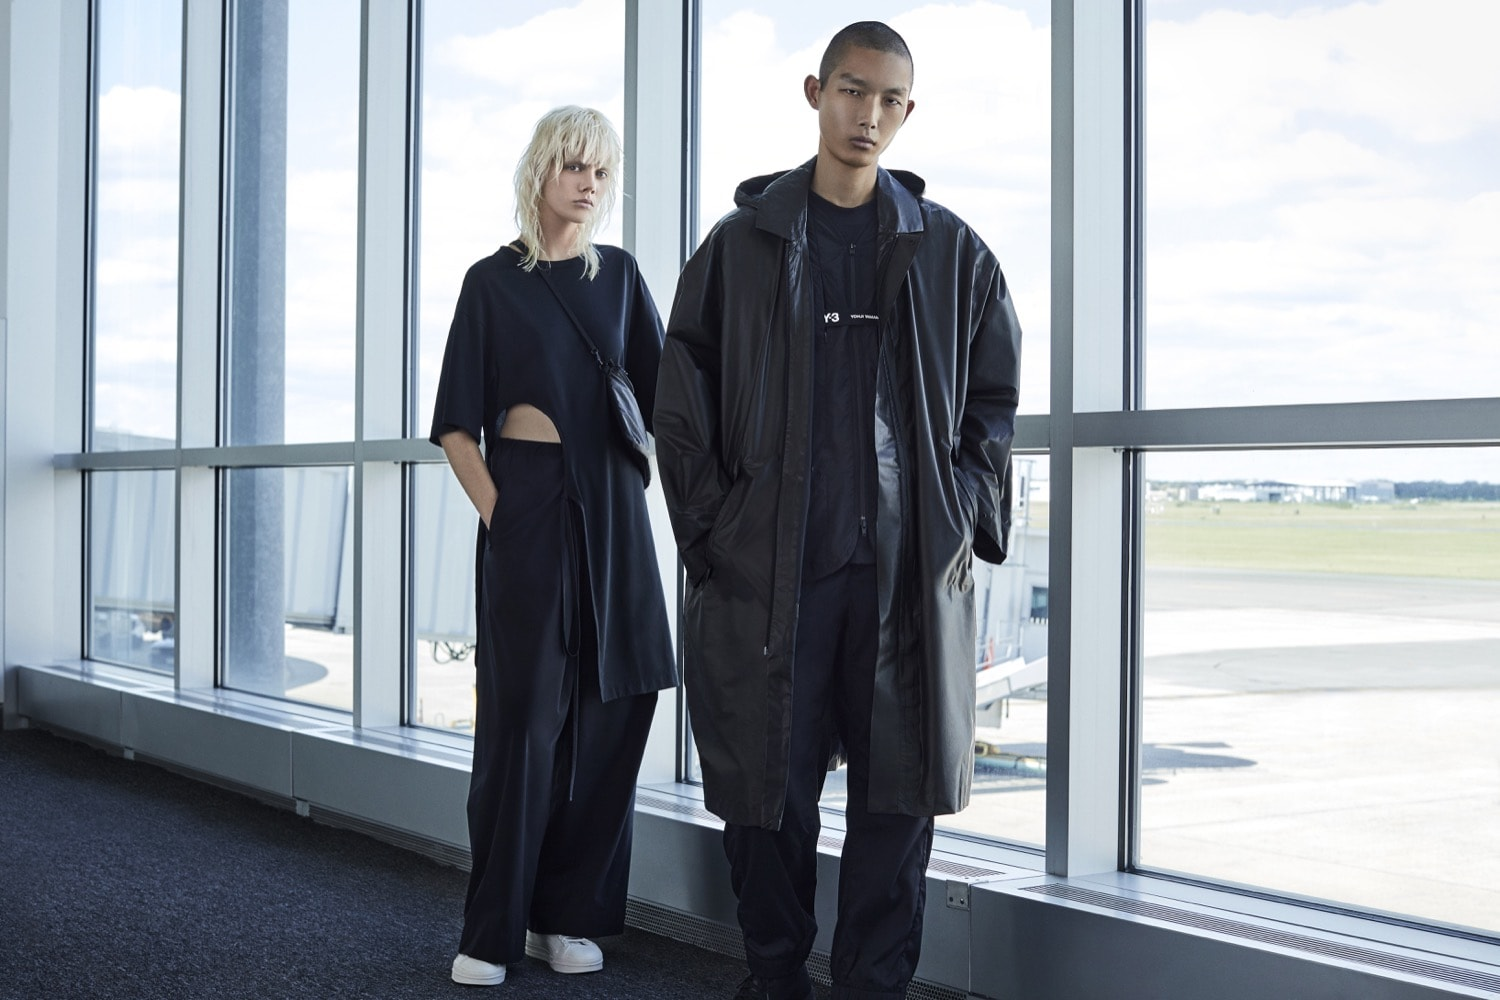 Y-3 Travel Lookbook